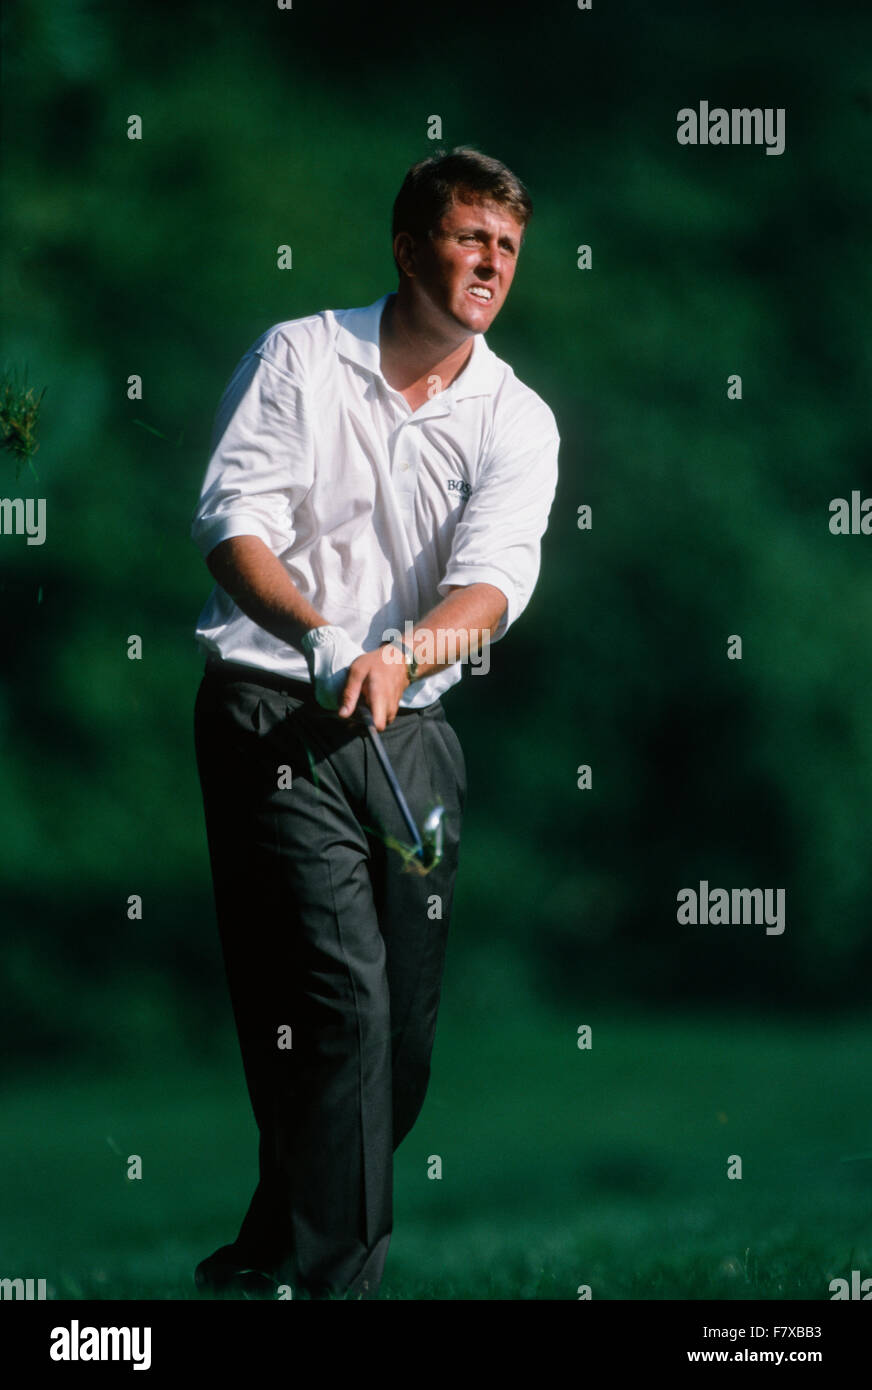 phil mickelson golfer stock photos  u0026 phil mickelson golfer